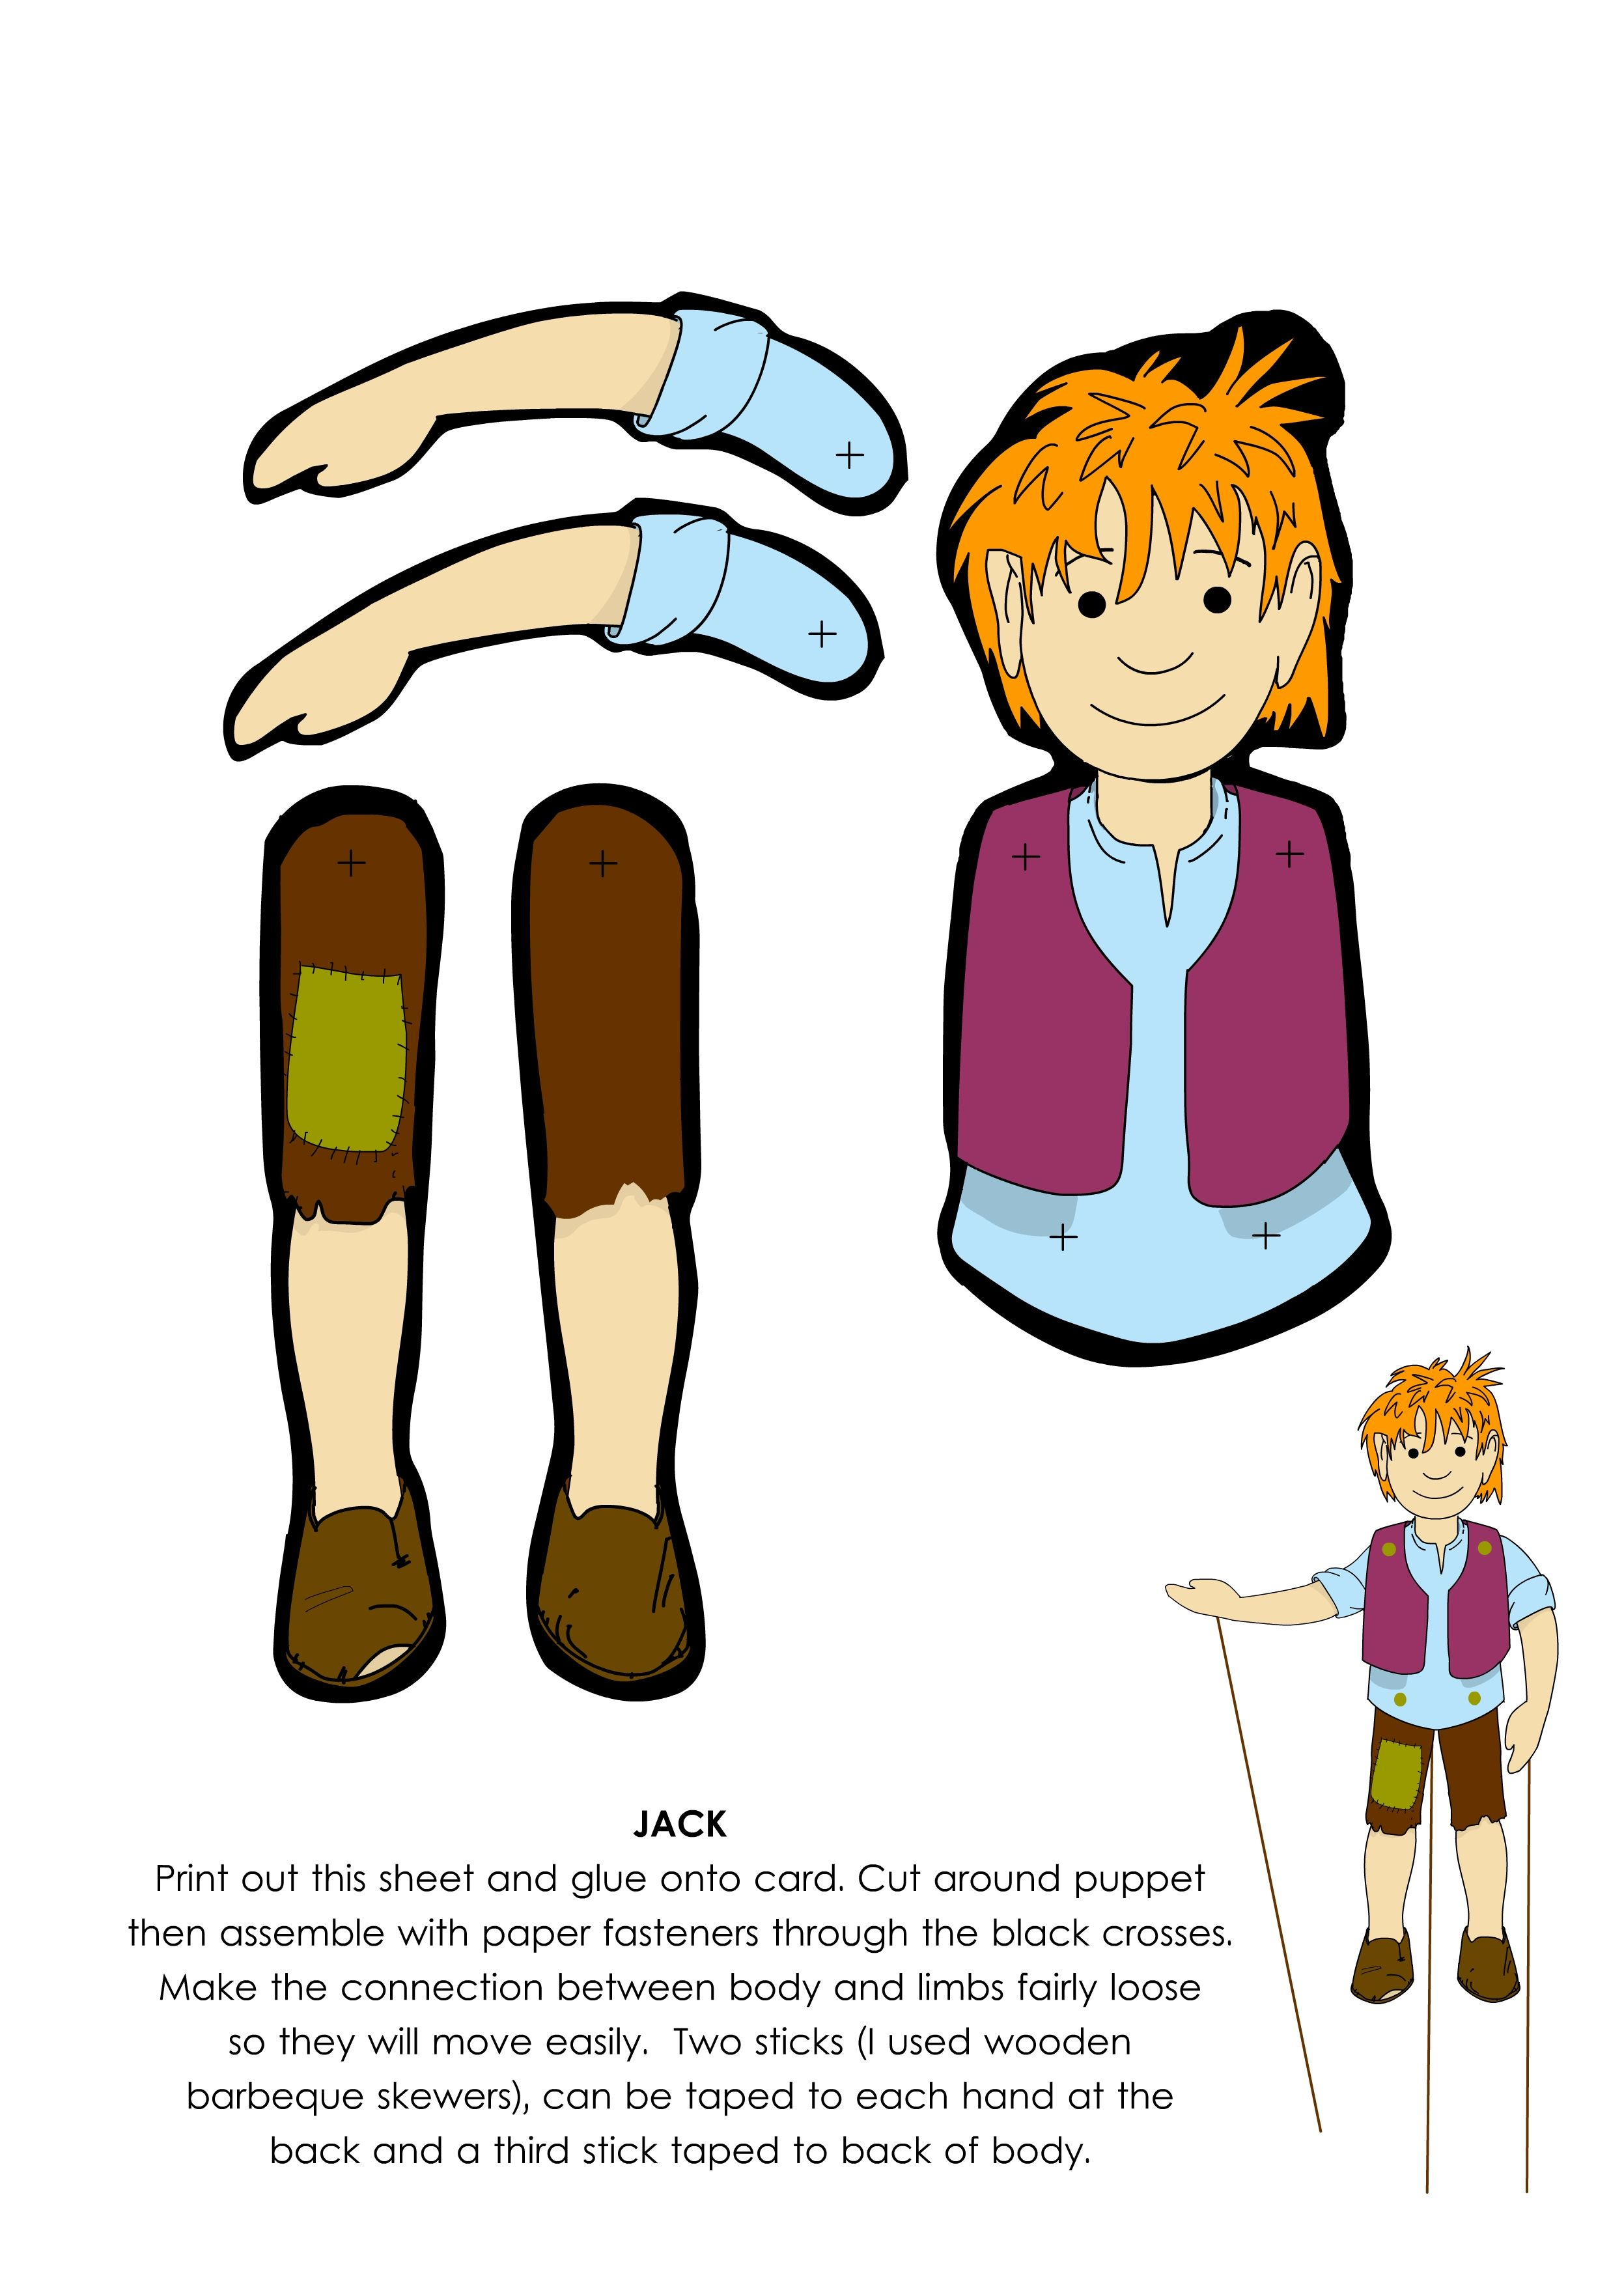 Jack Puppet From Jack And The Beanstalk From Littleredlanguages This Story Plus The